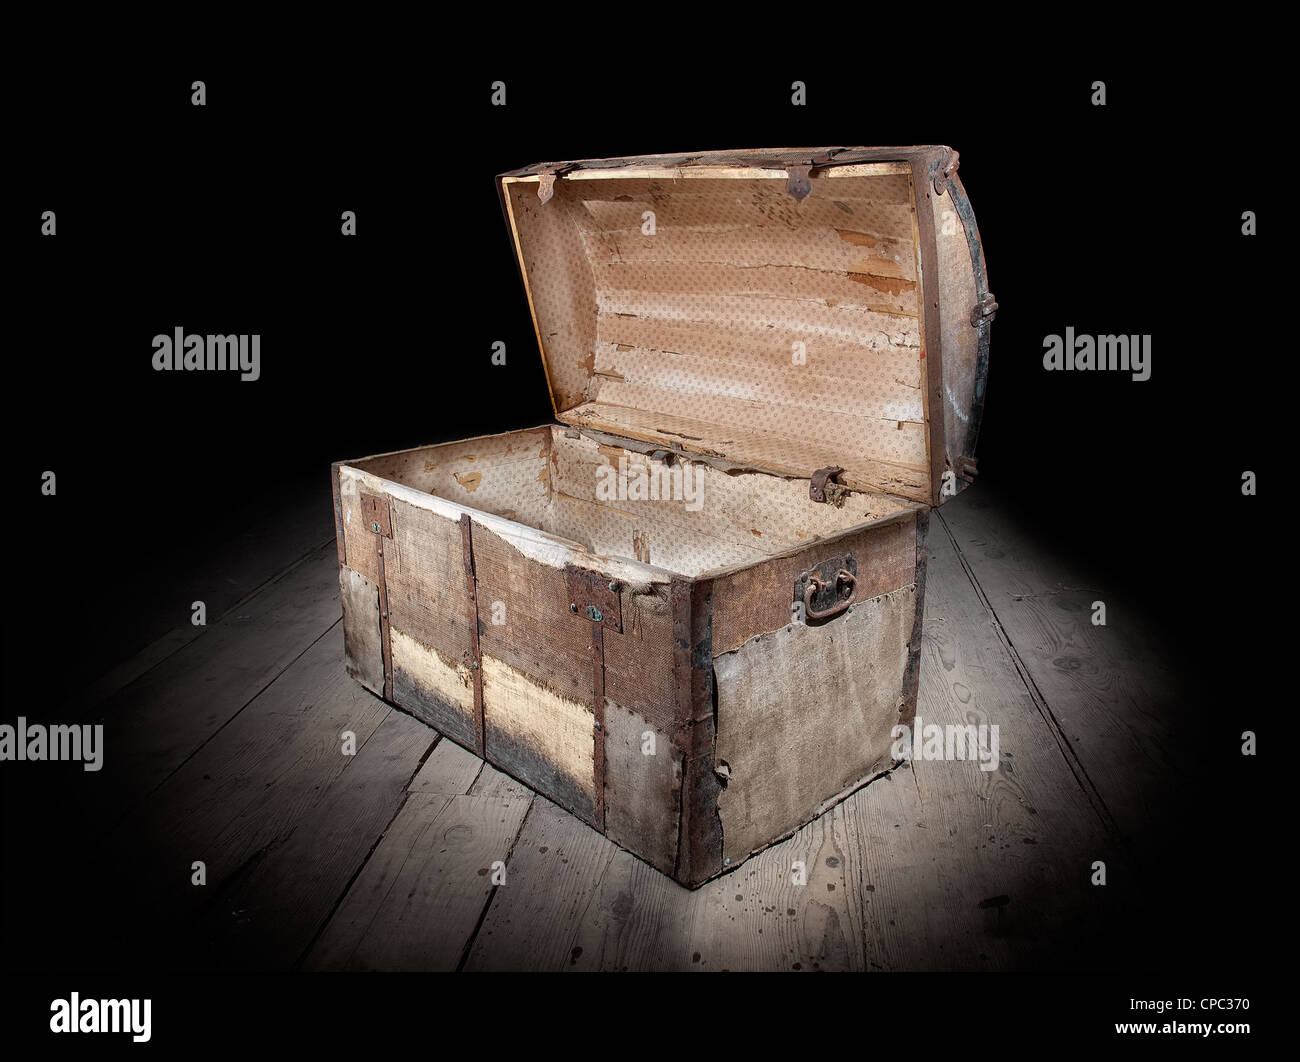 Treasure chest is open and empty. Stock Photo